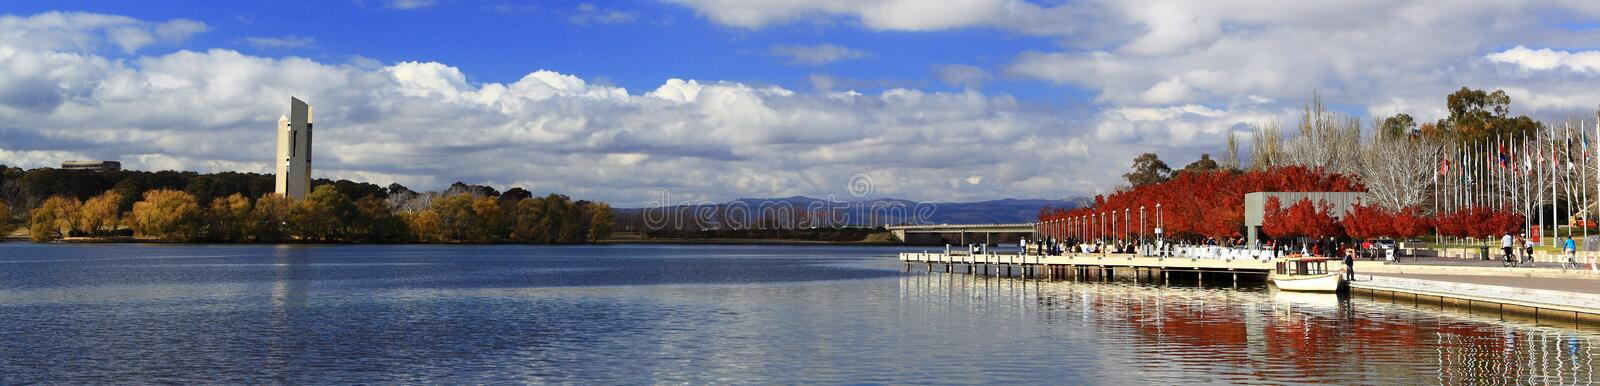 Commonwealth national park in Canberra royalty free stock image